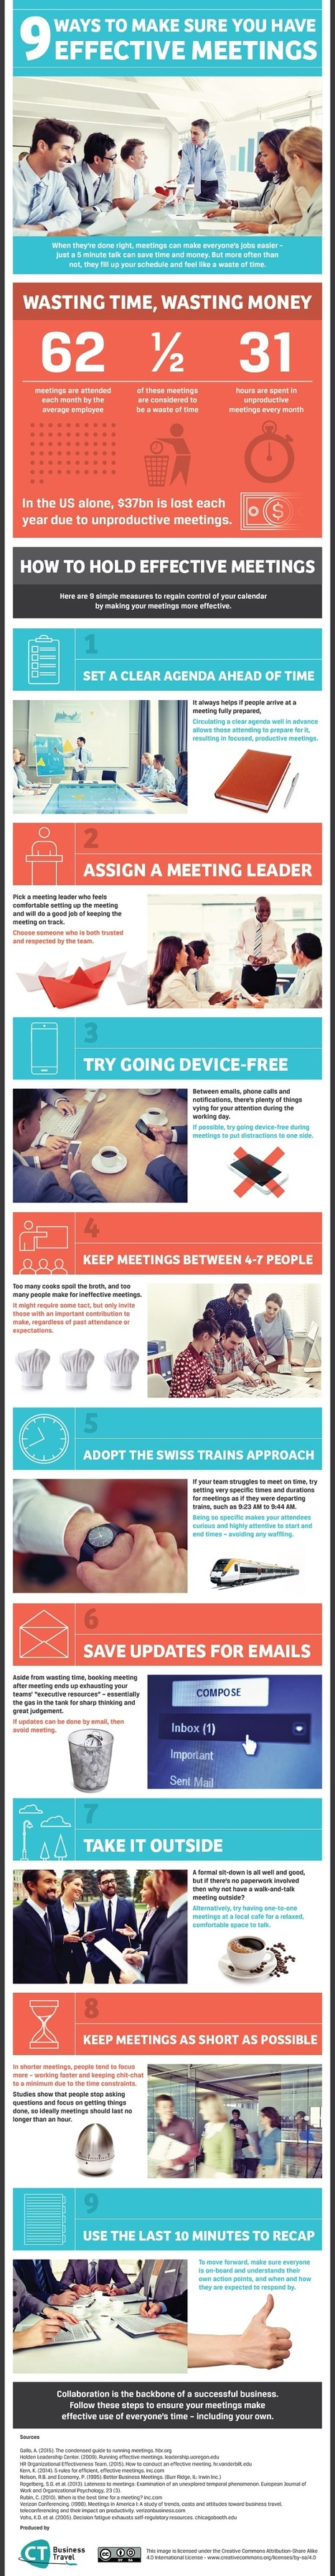 Nine Ways to Have More Effective Meetings [Infographic] | Mngt | Scoop.it